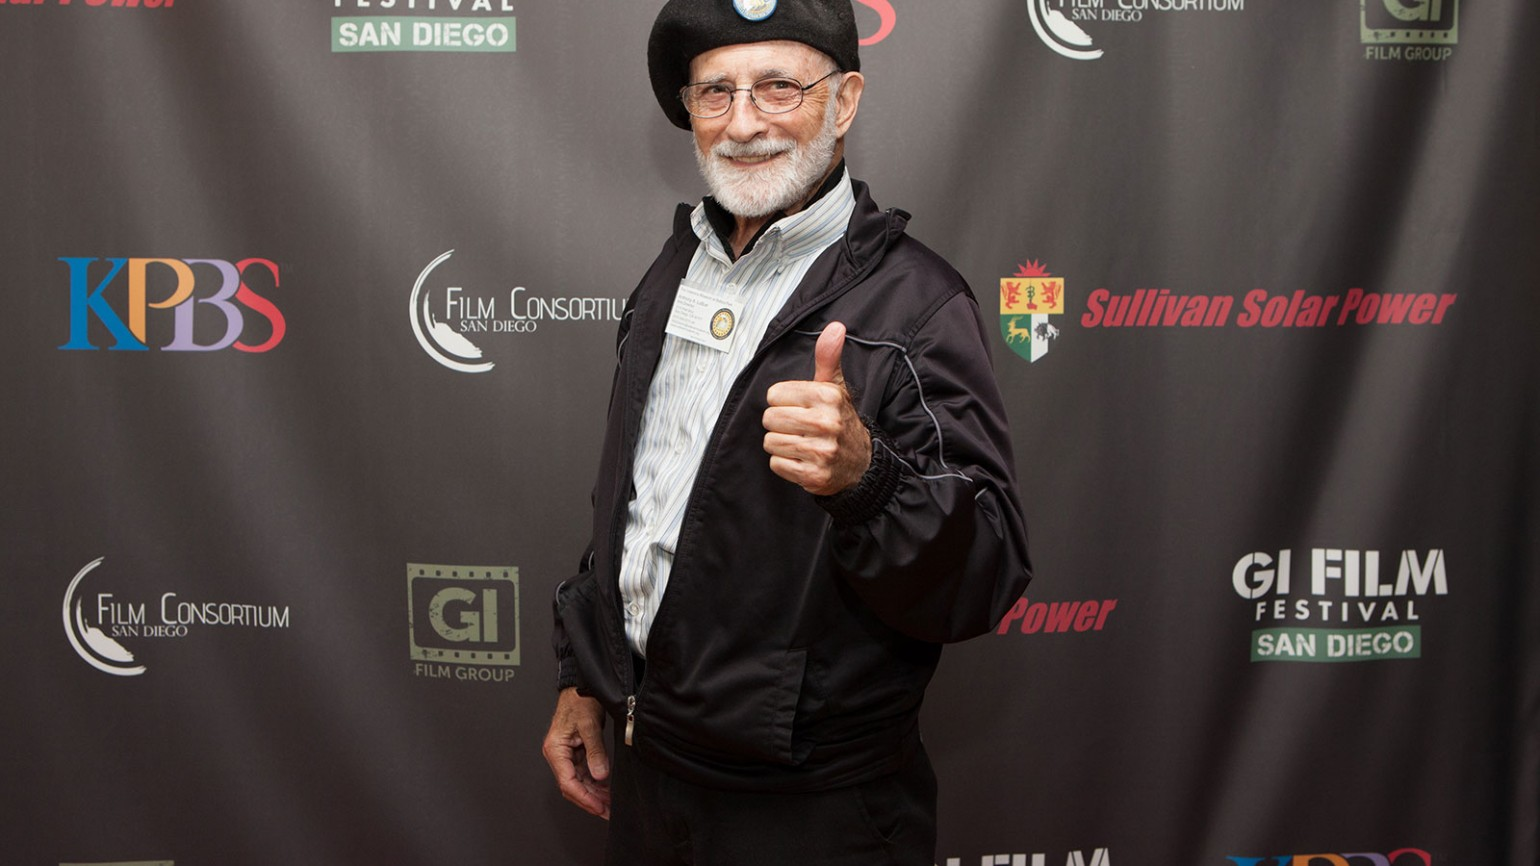 Image from 9/15 screenings at the Village Theatres in Coronado. Pictured is Anthony A. LoBue, Arts Director of the Veterans Museum at Balboa Park.